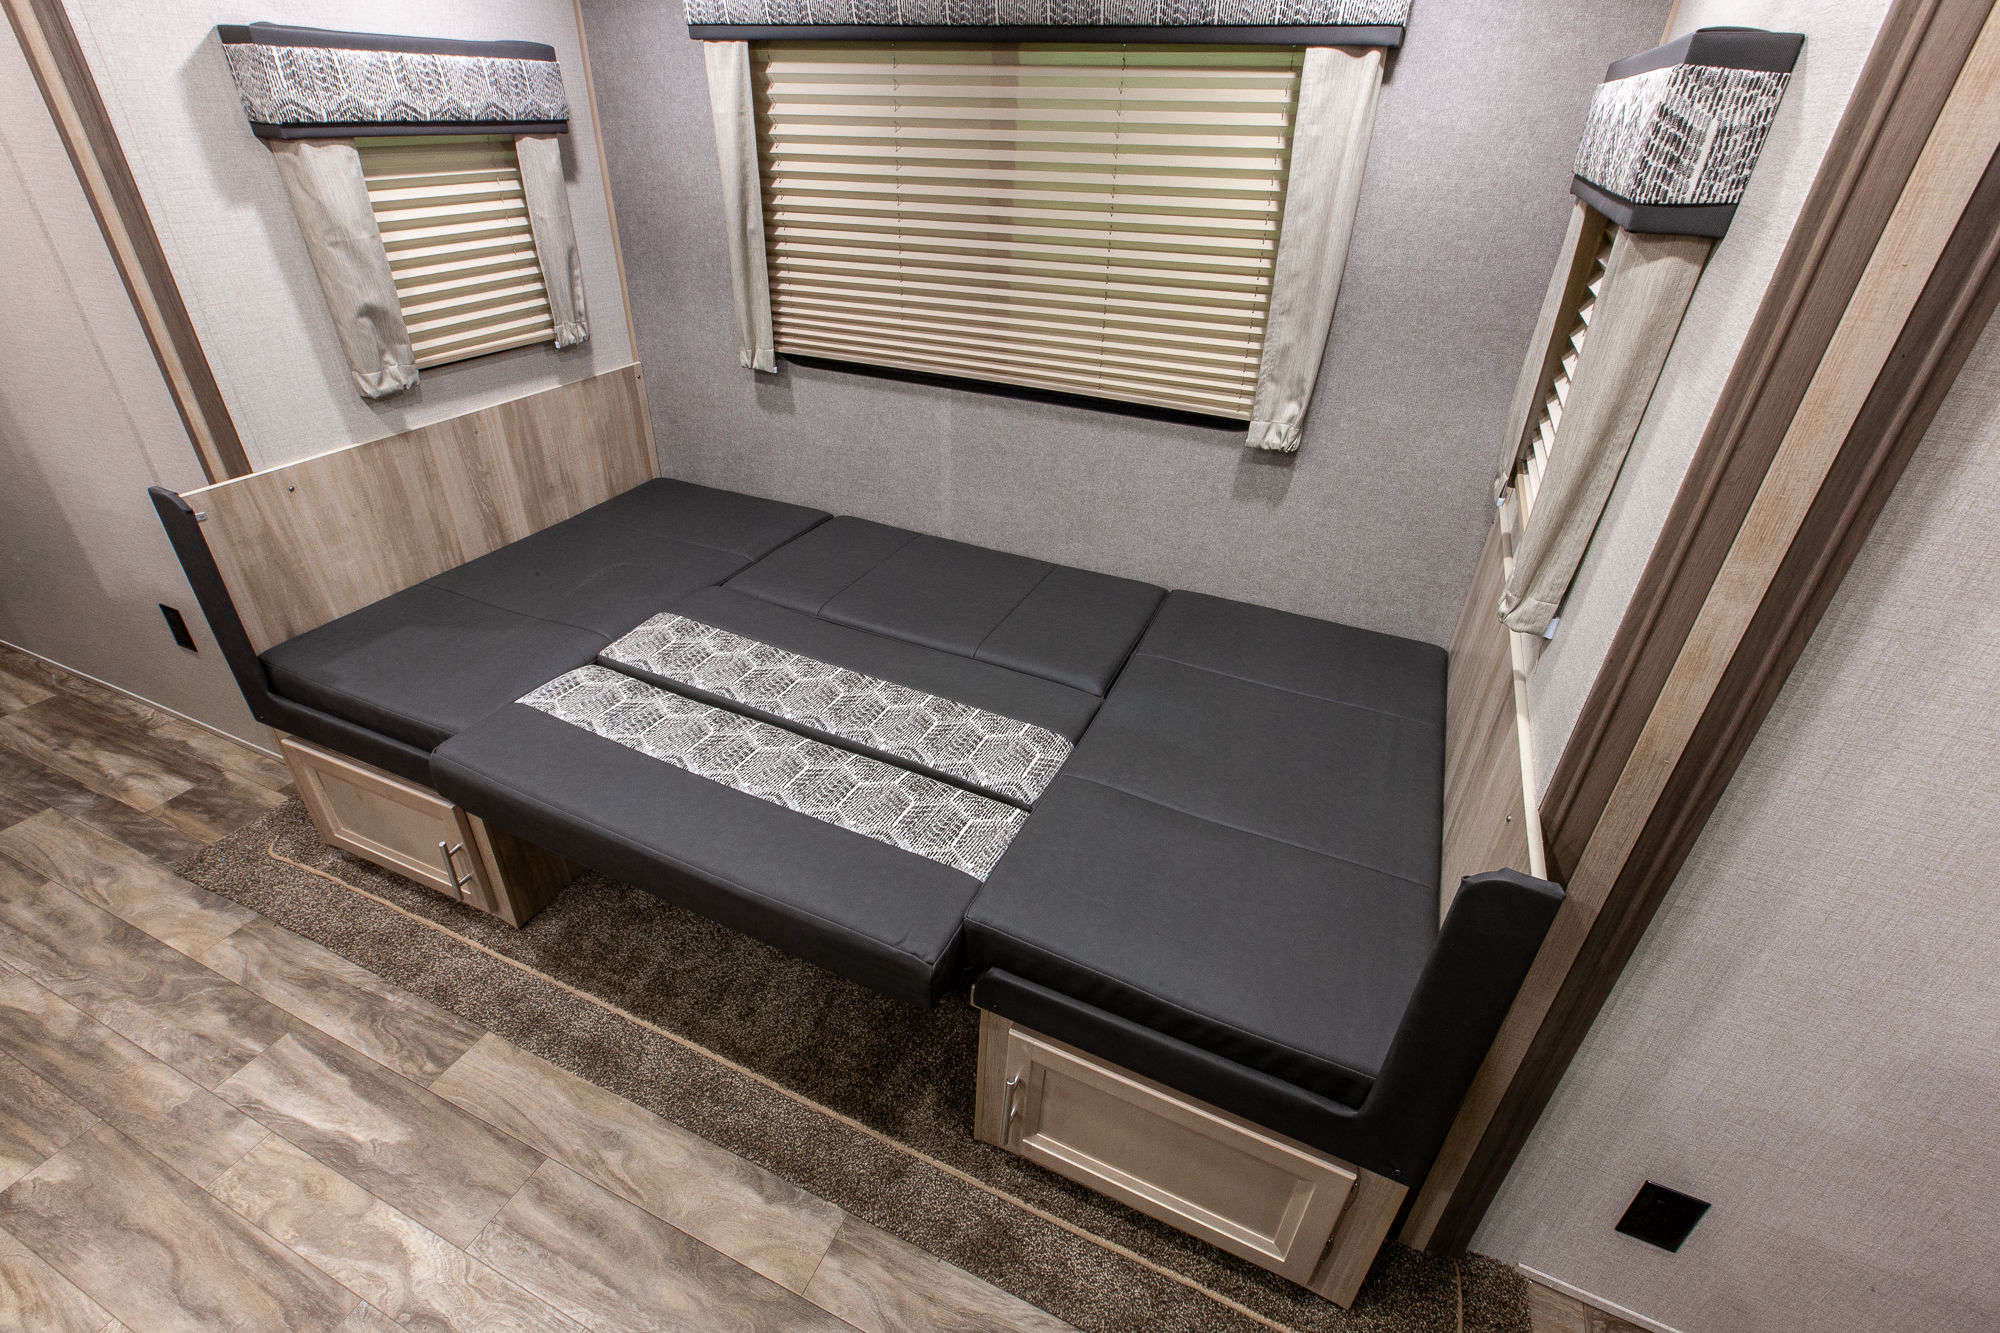 2021 Coachmen Catalina Trail Blazer 29THS Toy Hauler Travel Trailer Interior Image